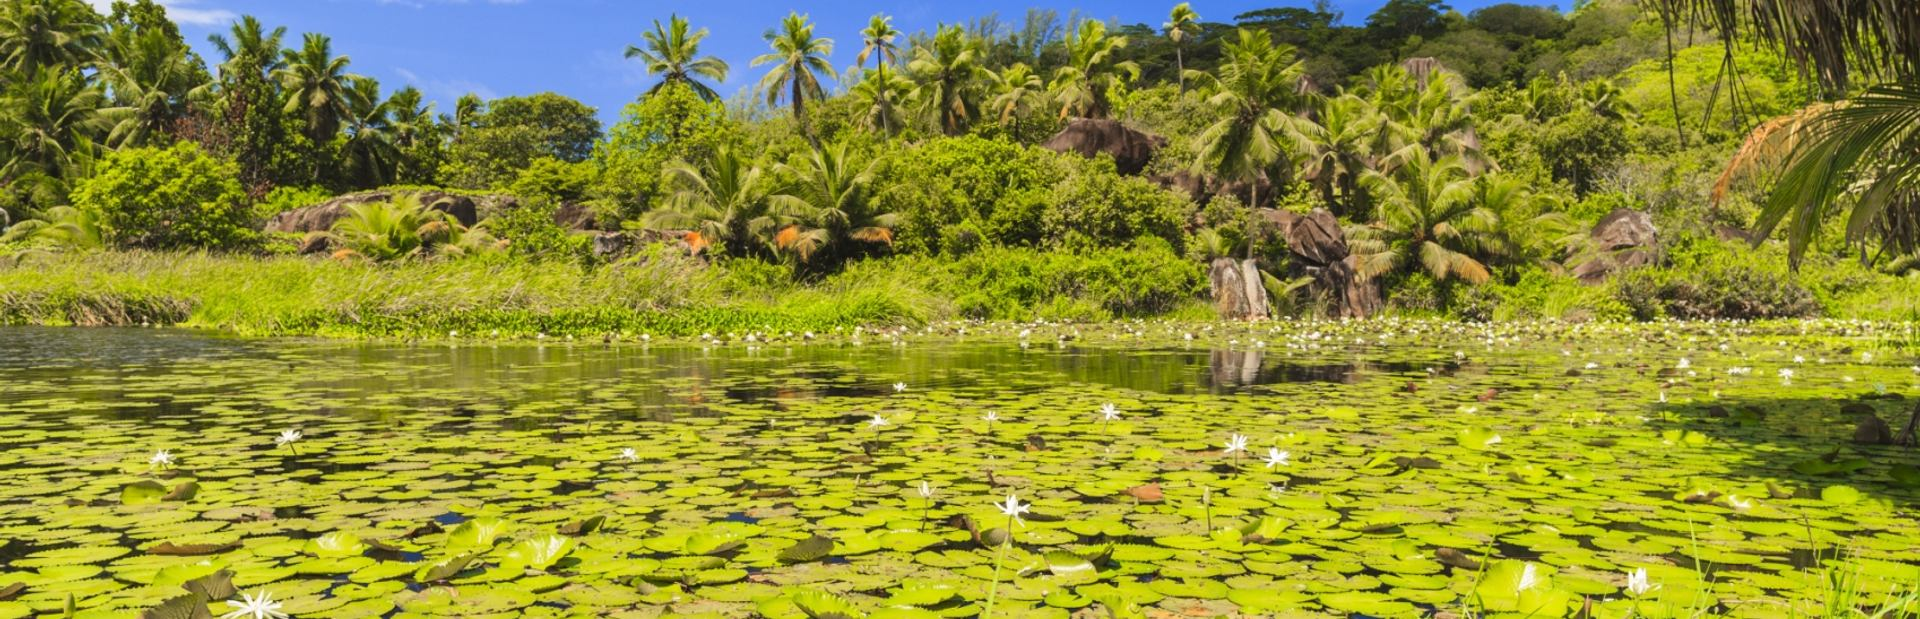 Admire the Lily-filled Lagoon of Mahe